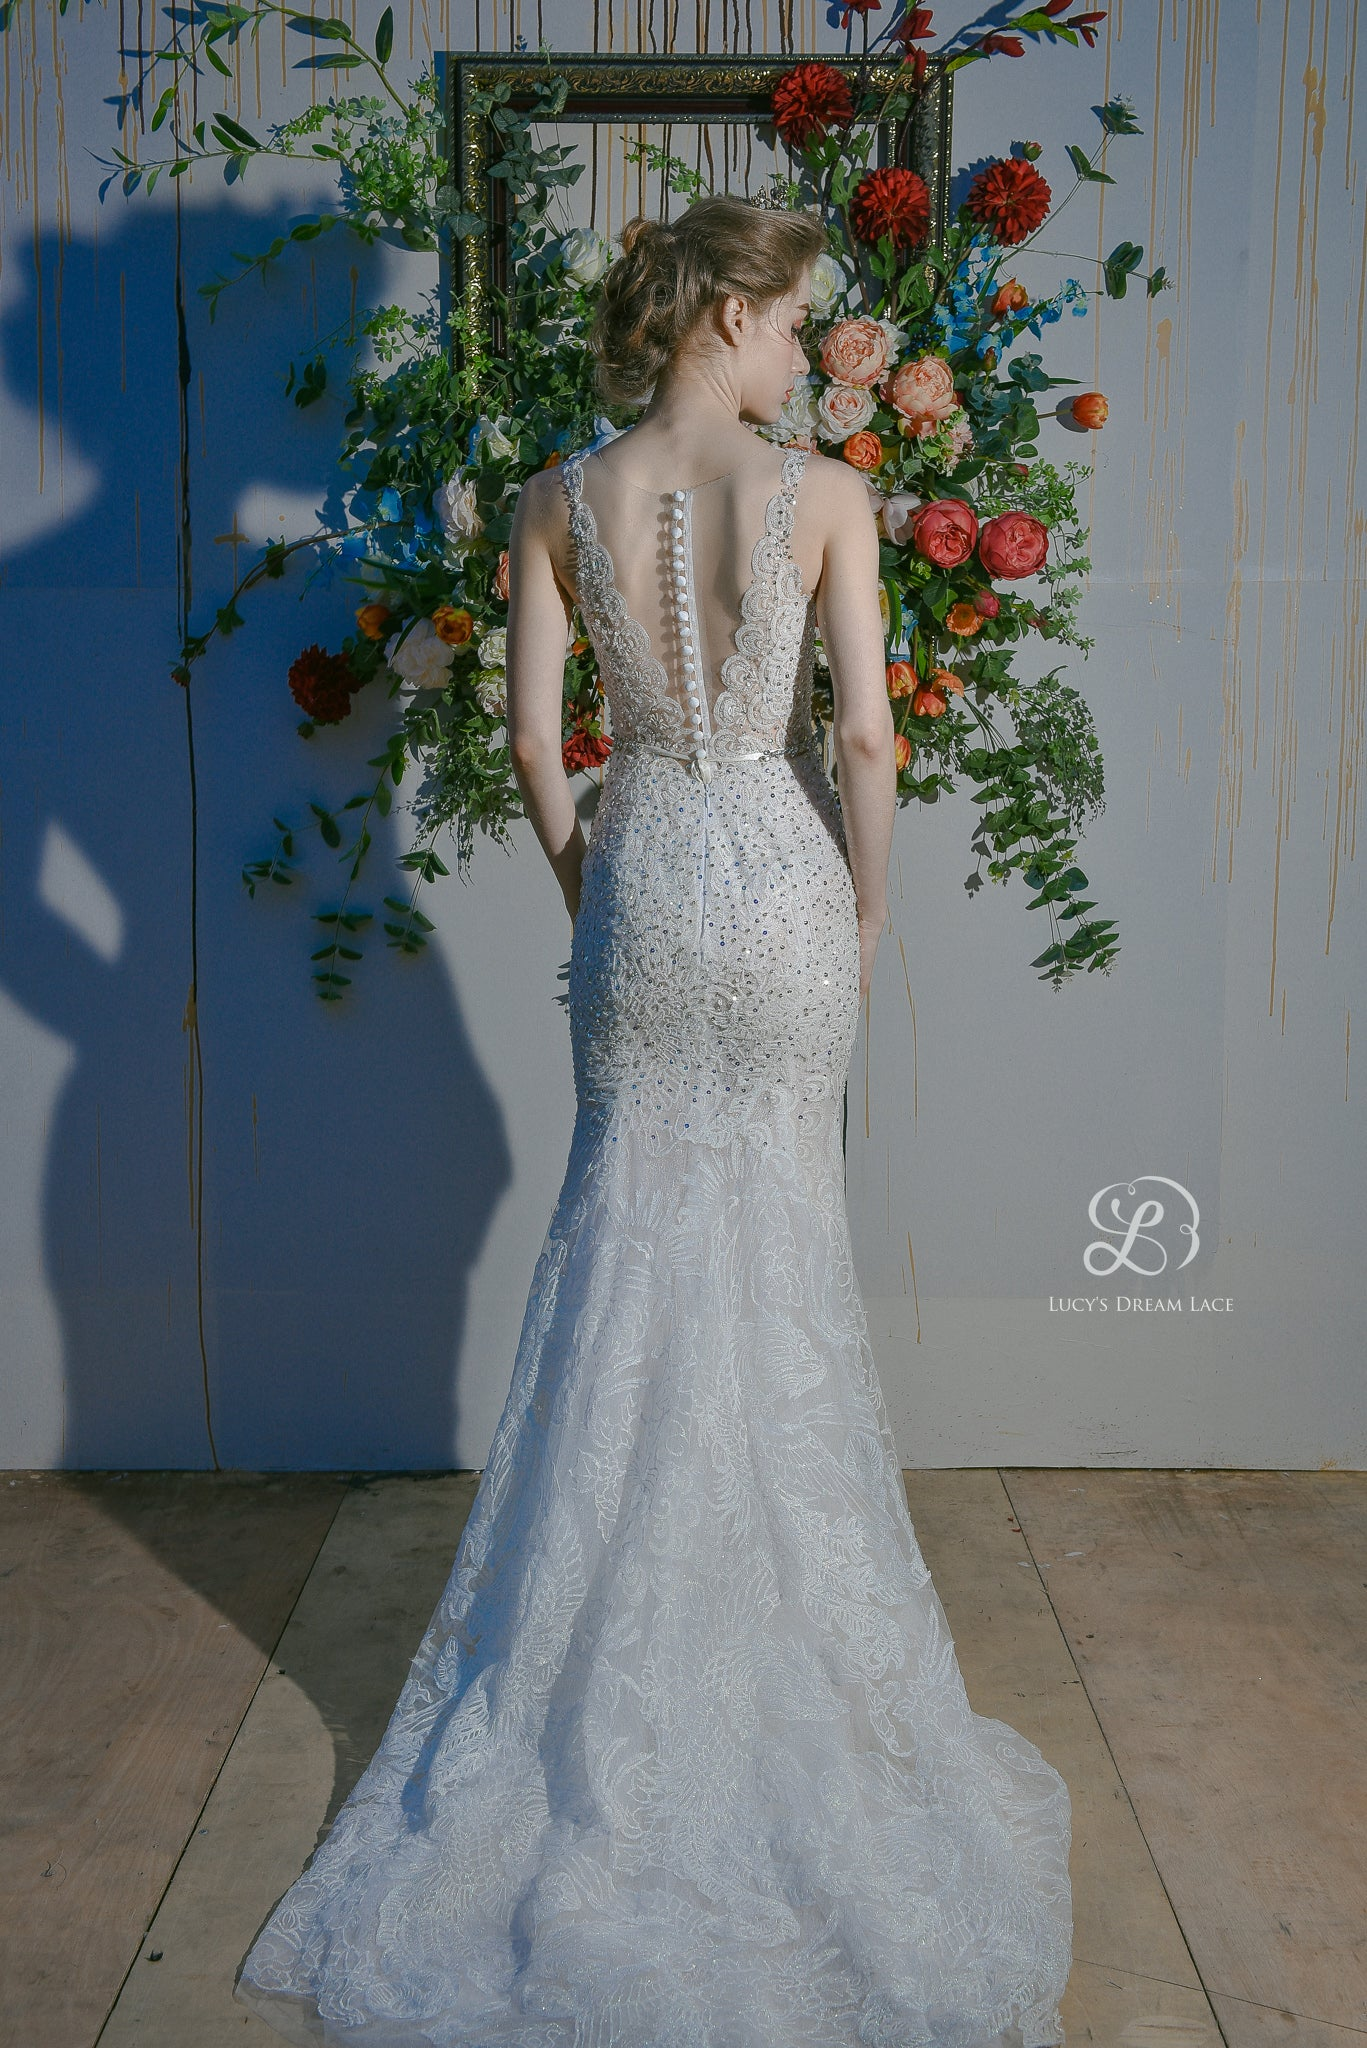 """PHOENIX DANCE"" 2-in-1 Embellished Lace Art Wedding Dress"